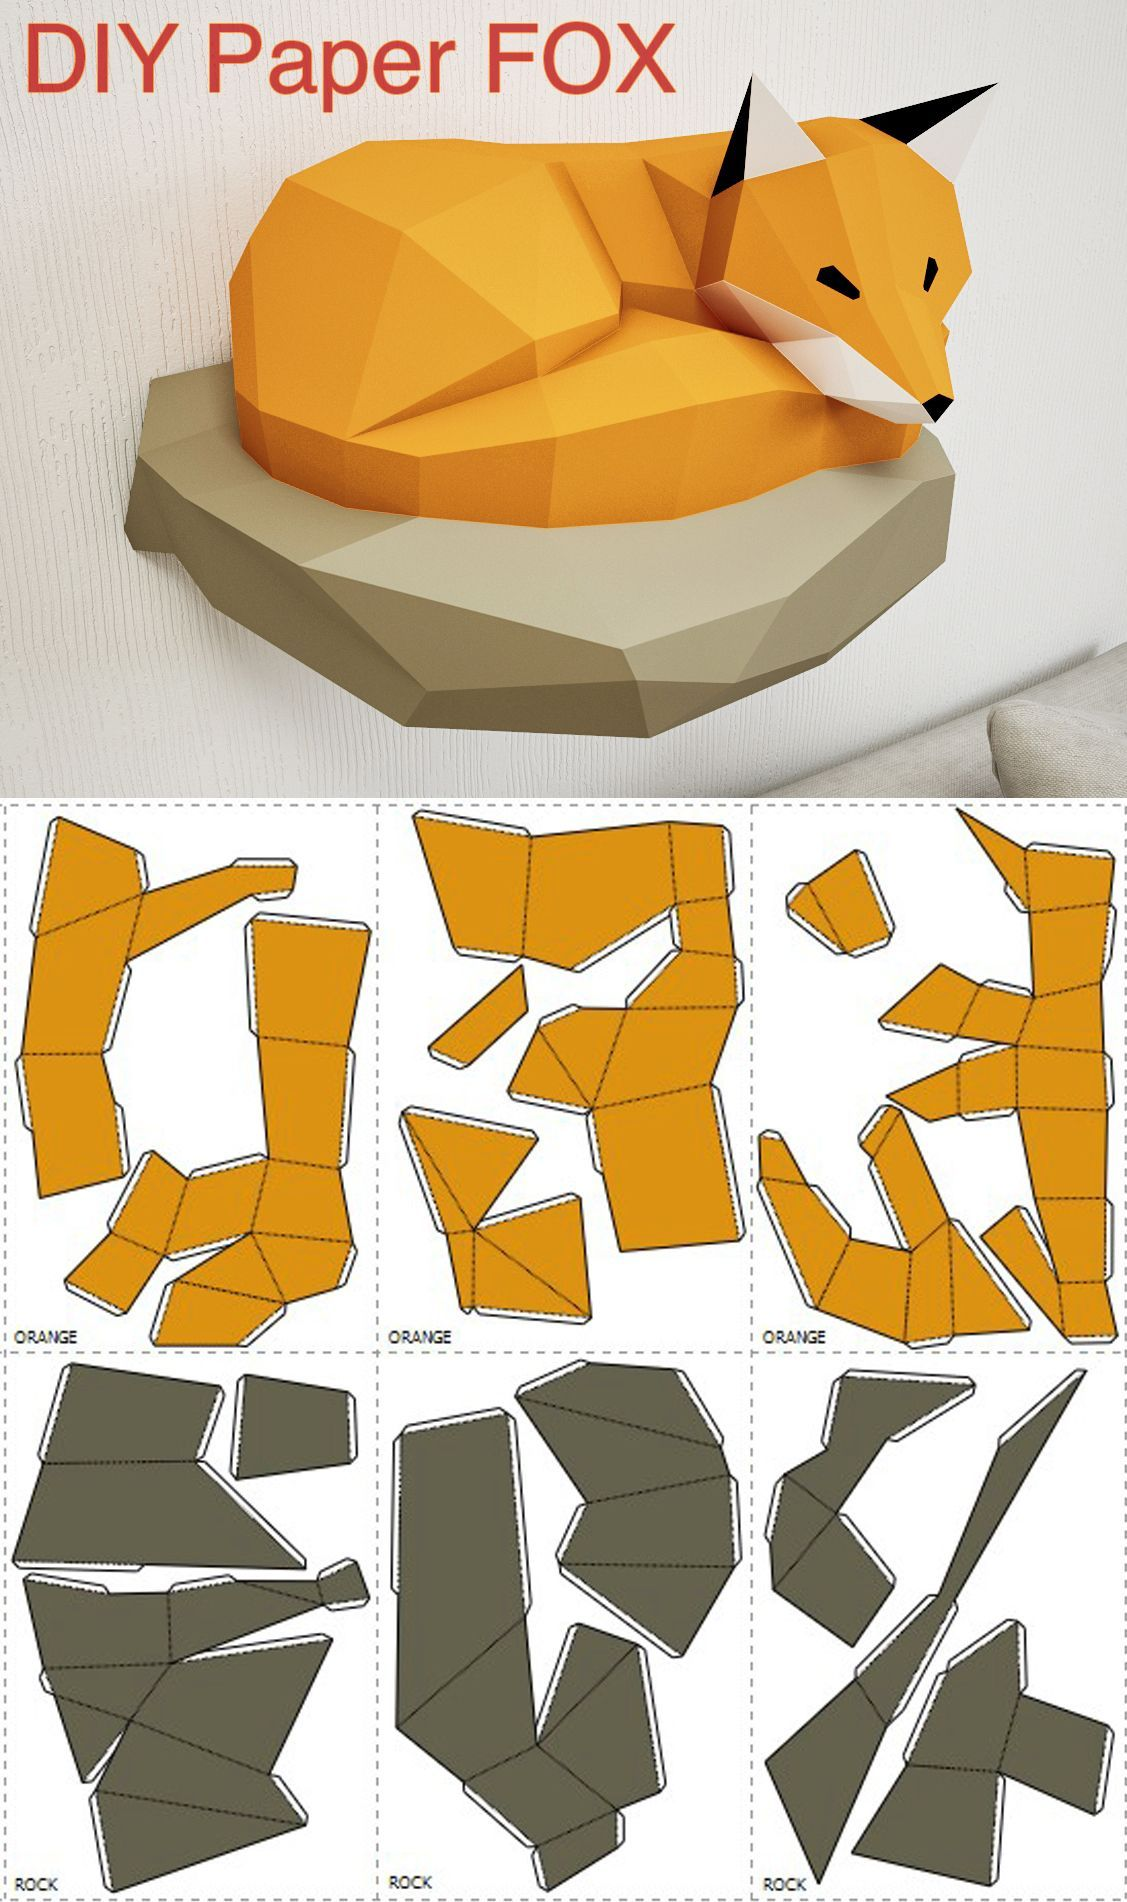 Papercraft Fox on rock, paper model, 3d paper craft, paper sculpture PDF template, low poly animals papercraft, wall home decor pepakura kit